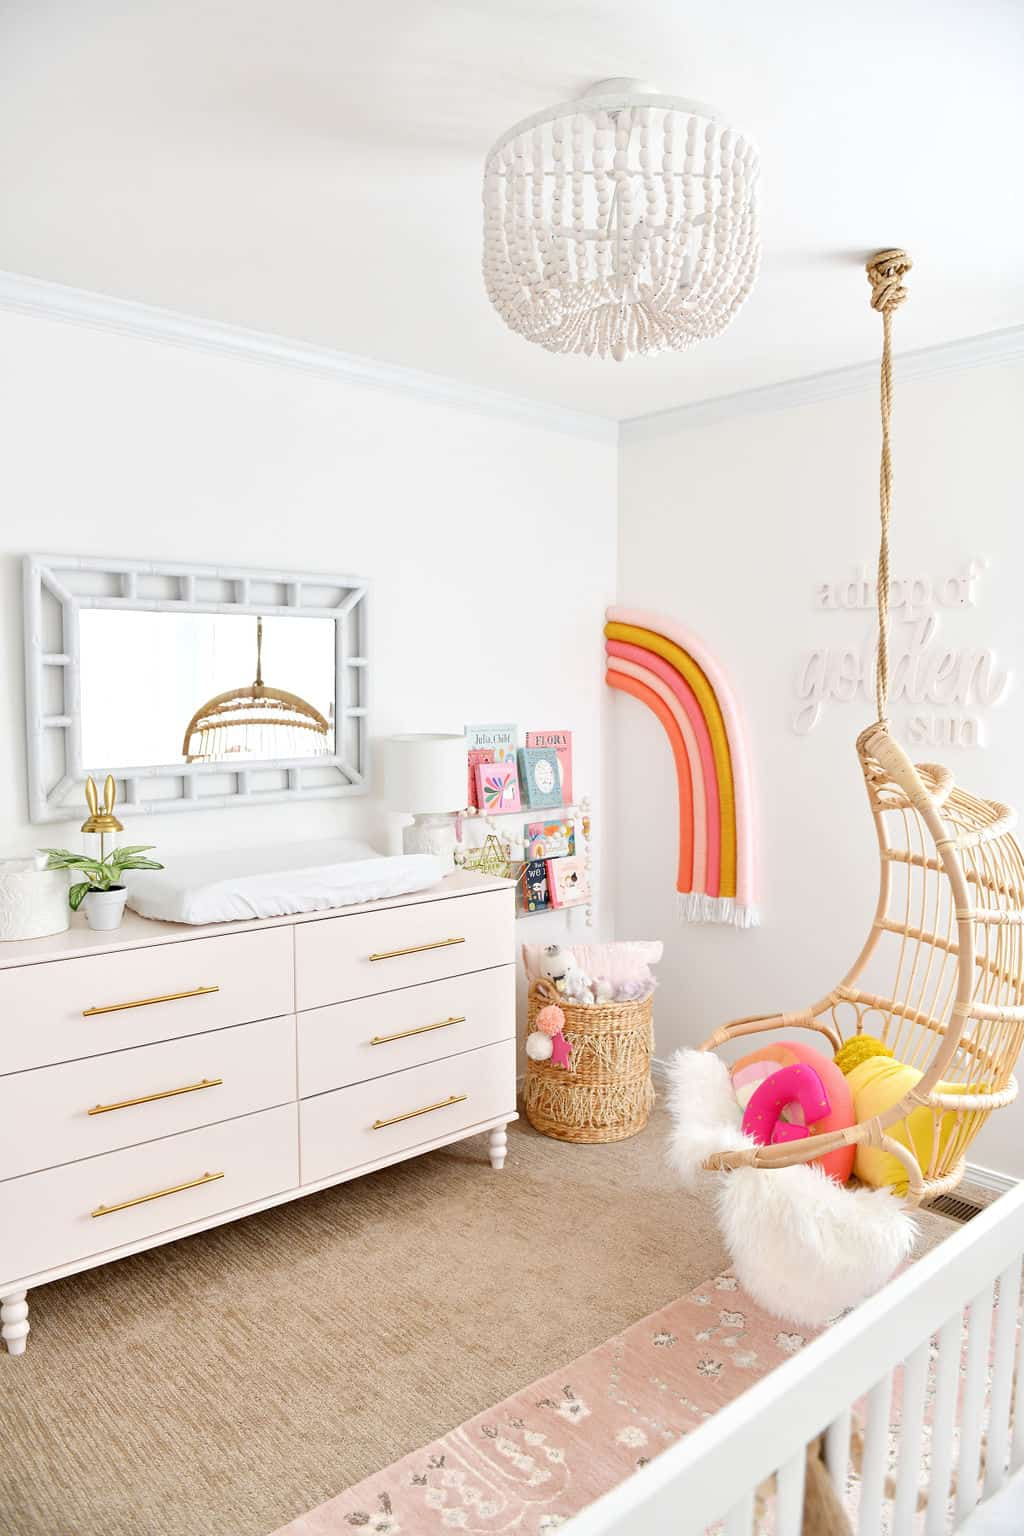 Pink Ikea dresser in room with rainbow